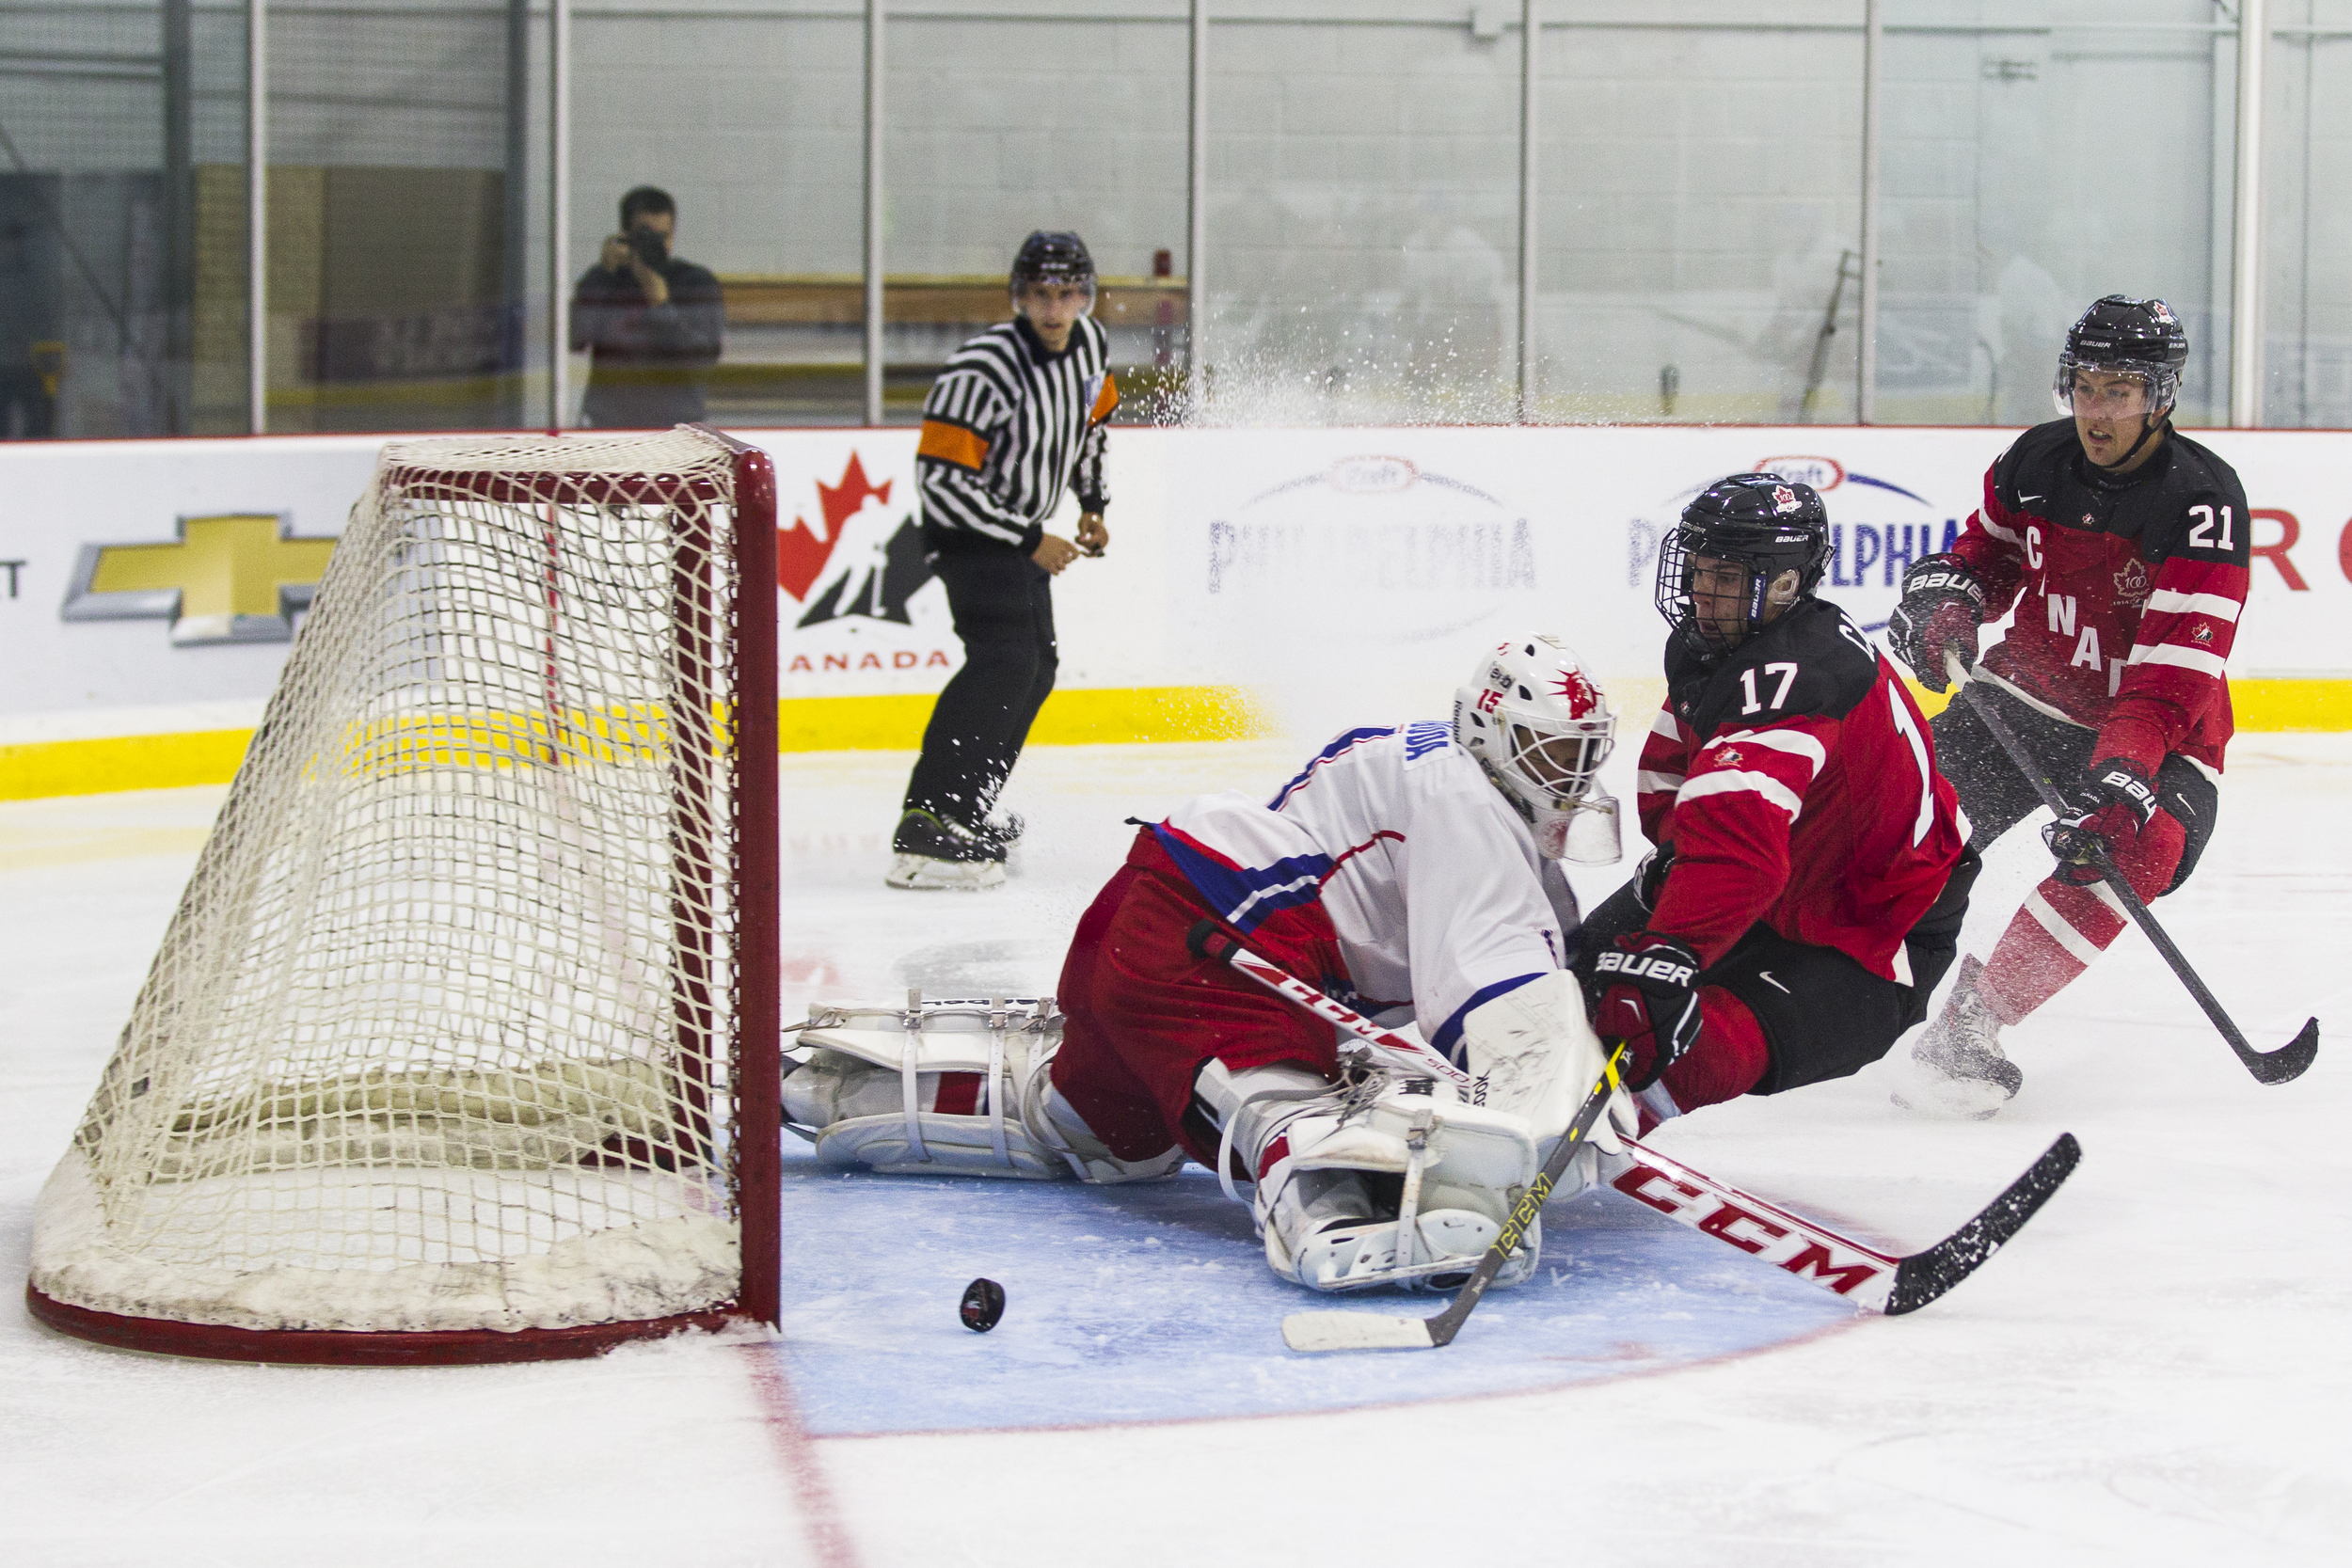 2014-08-08_WORLD-JUNIORS_720.JPG